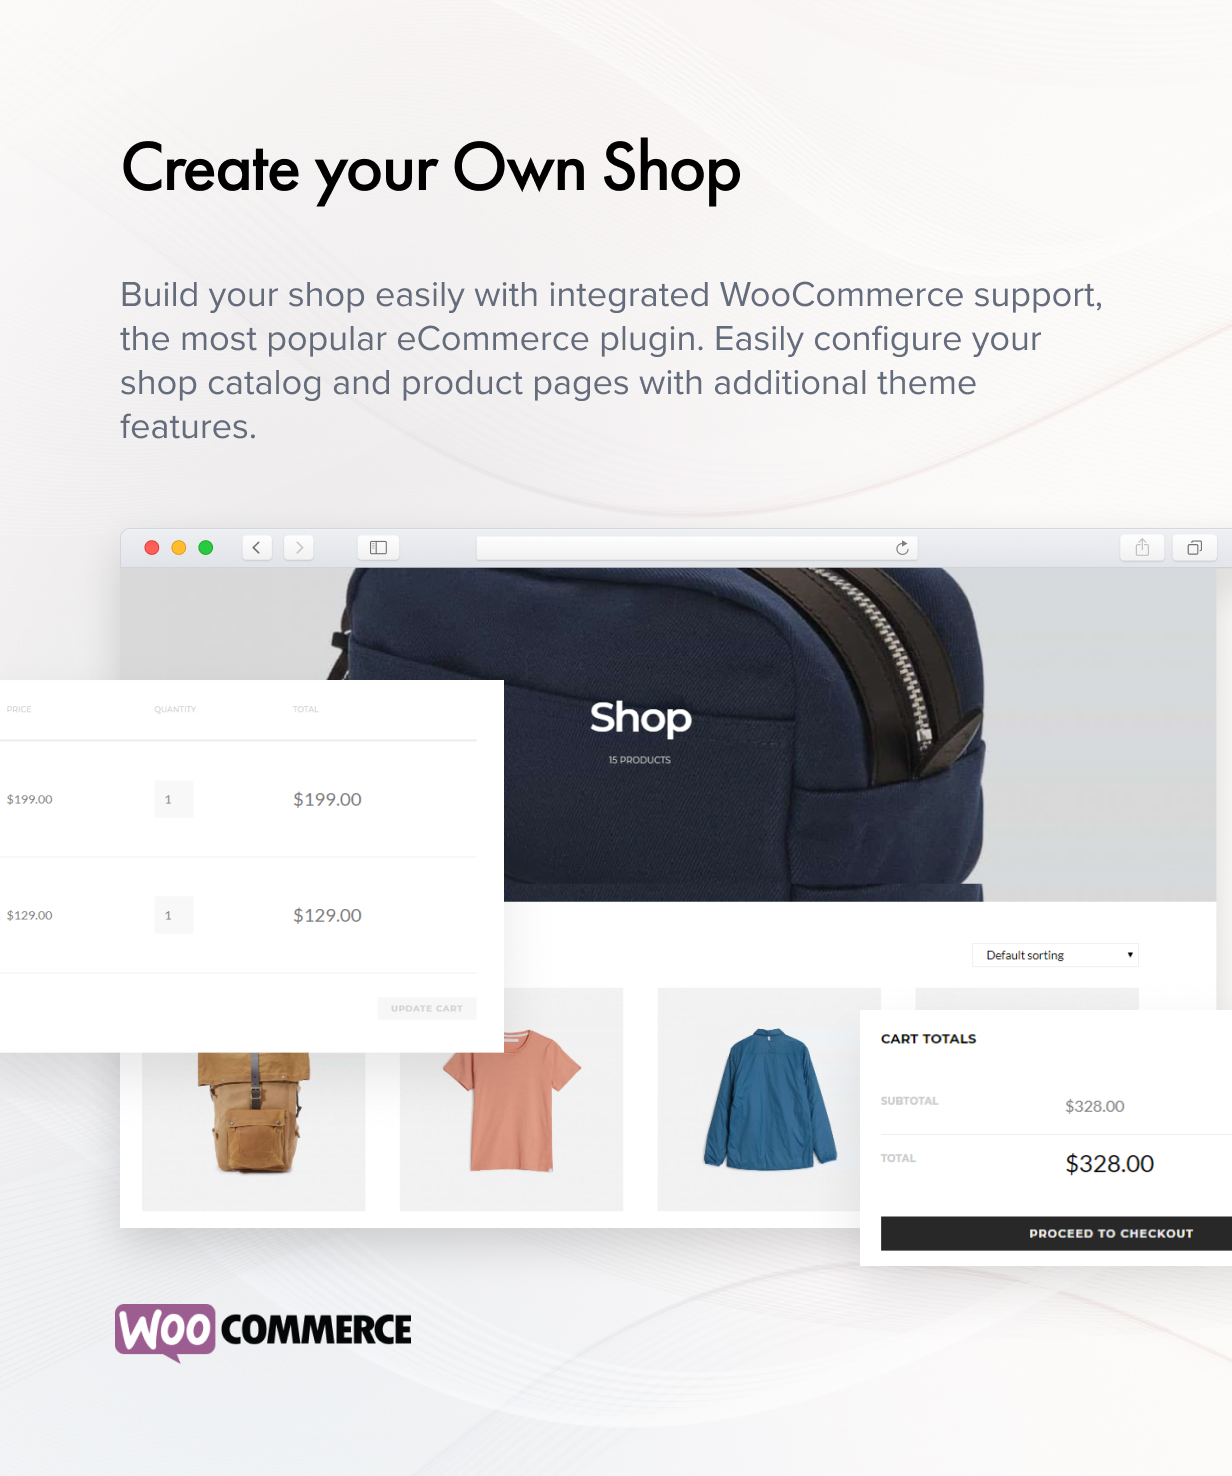 shop - Authentic - Lifestyle Blog & Magazine WordPress Theme